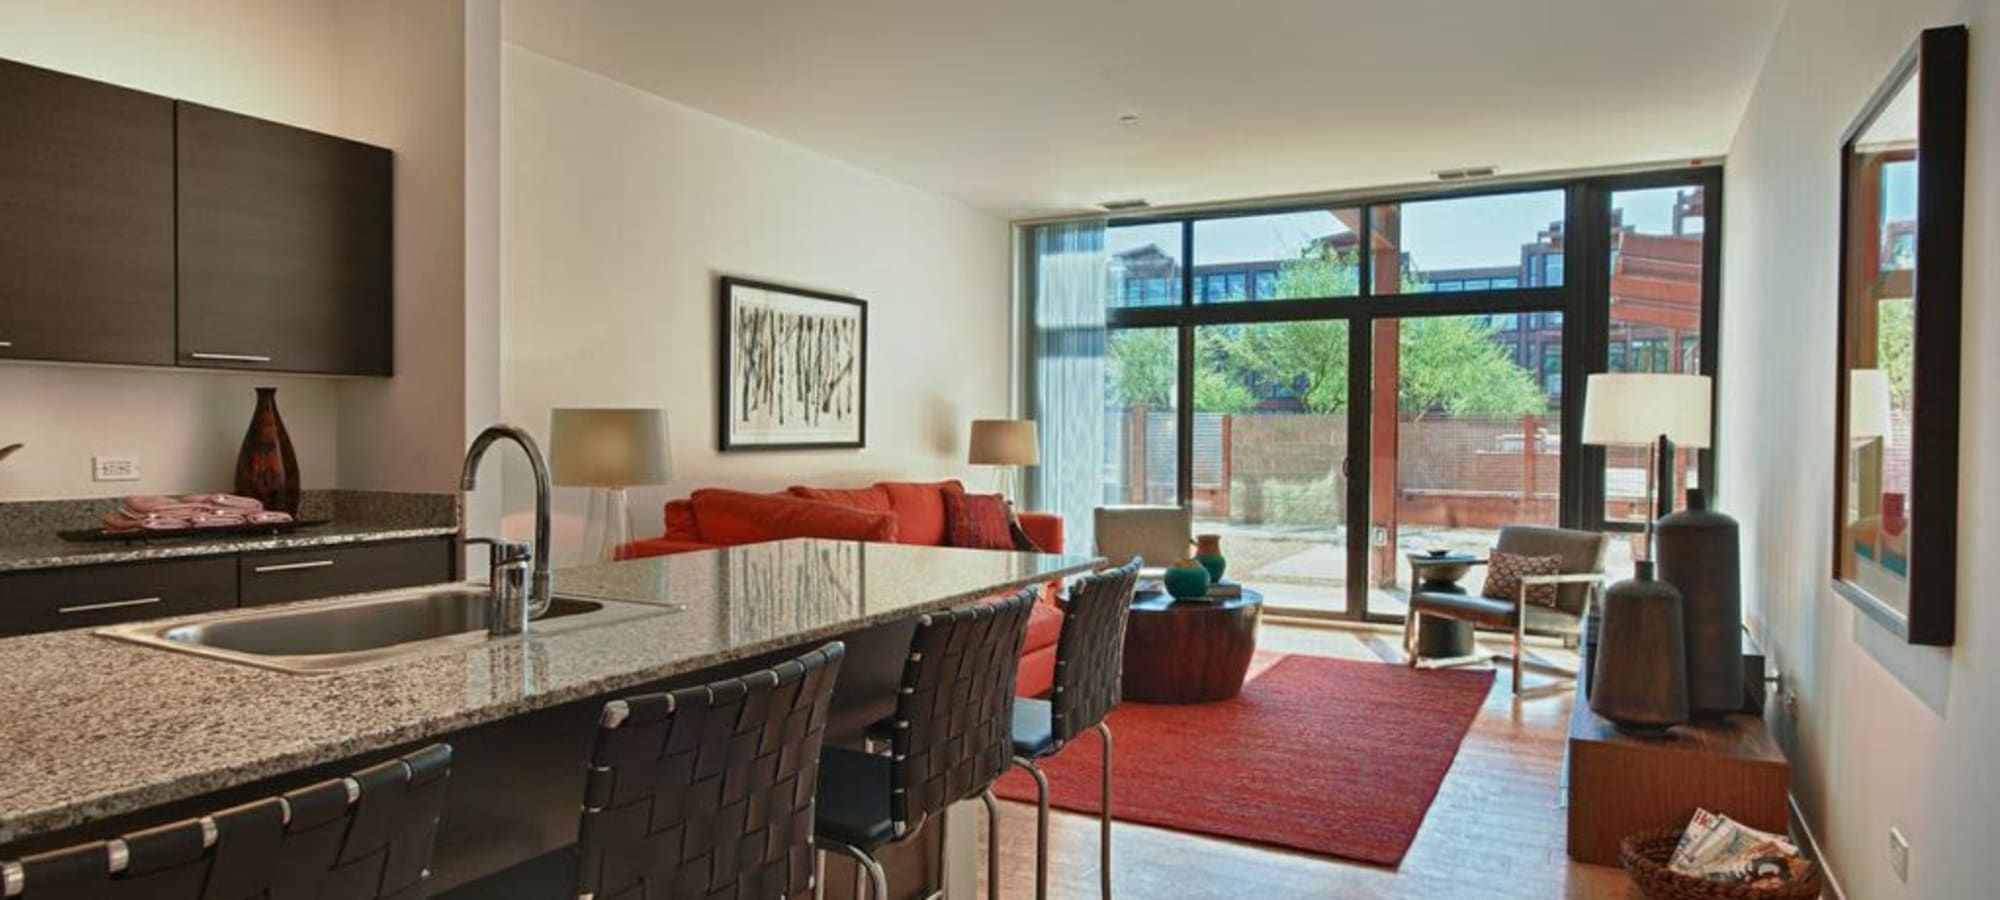 Our apartments in Phoenix, Arizona showcase a luxury living room with a sliding glass door